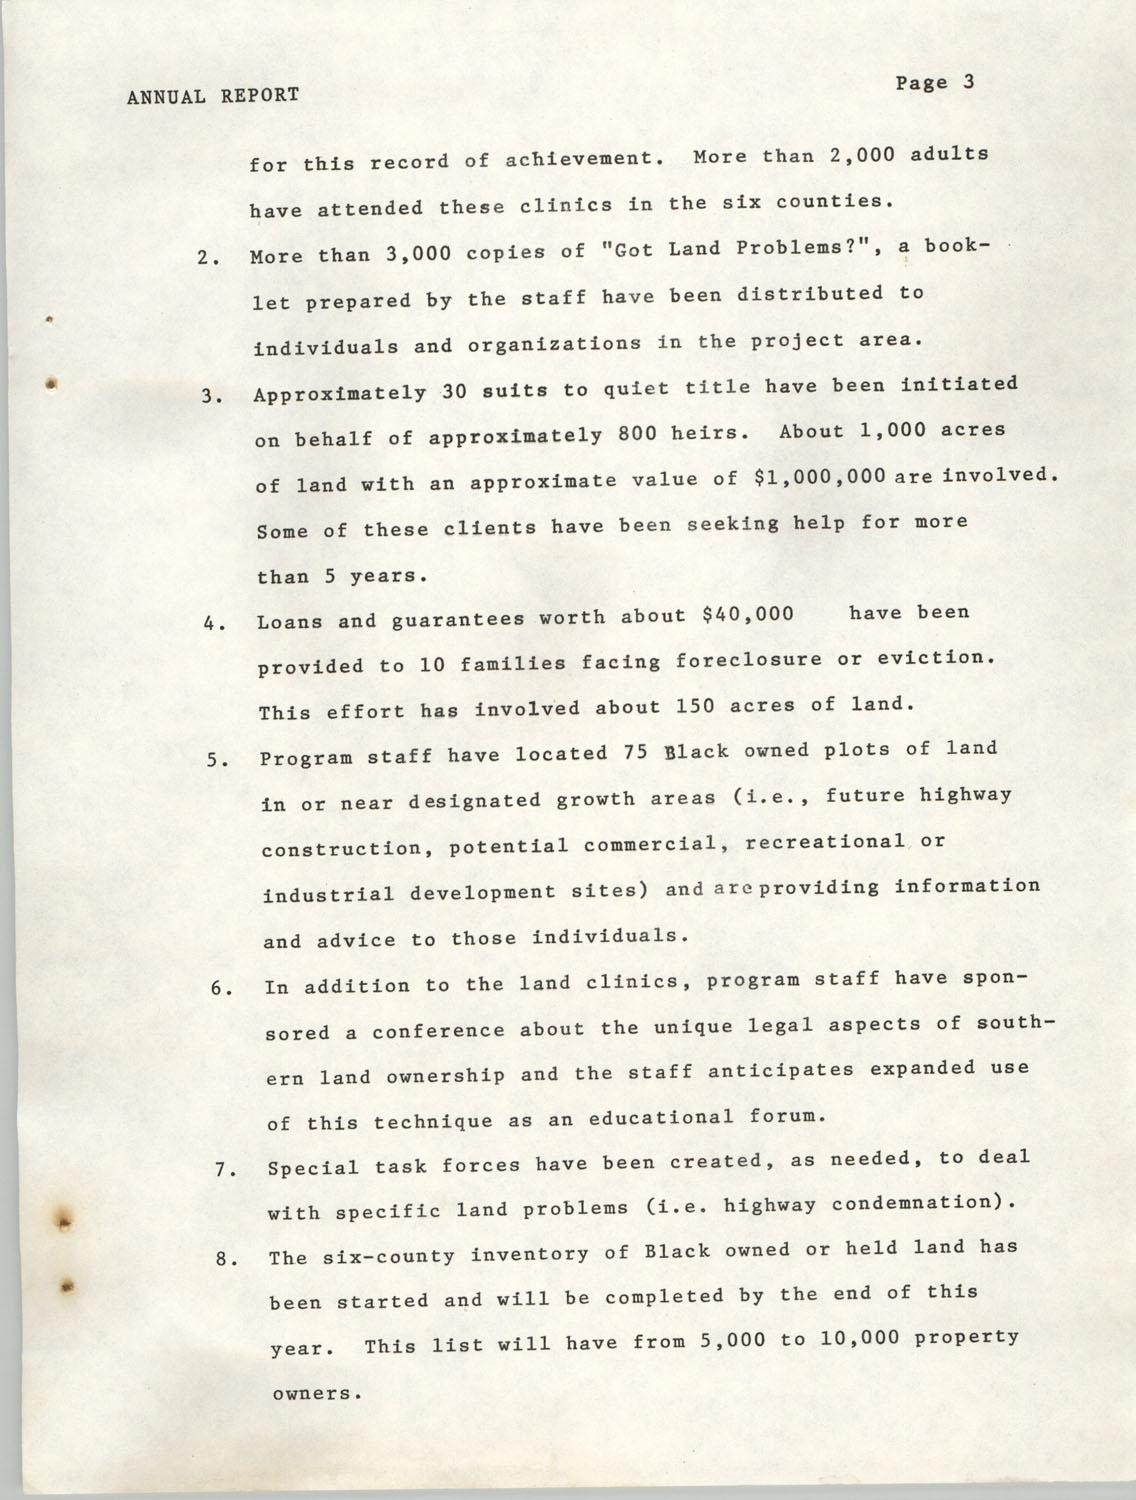 Annual Report, Penn Community Services, 1974, Page 3